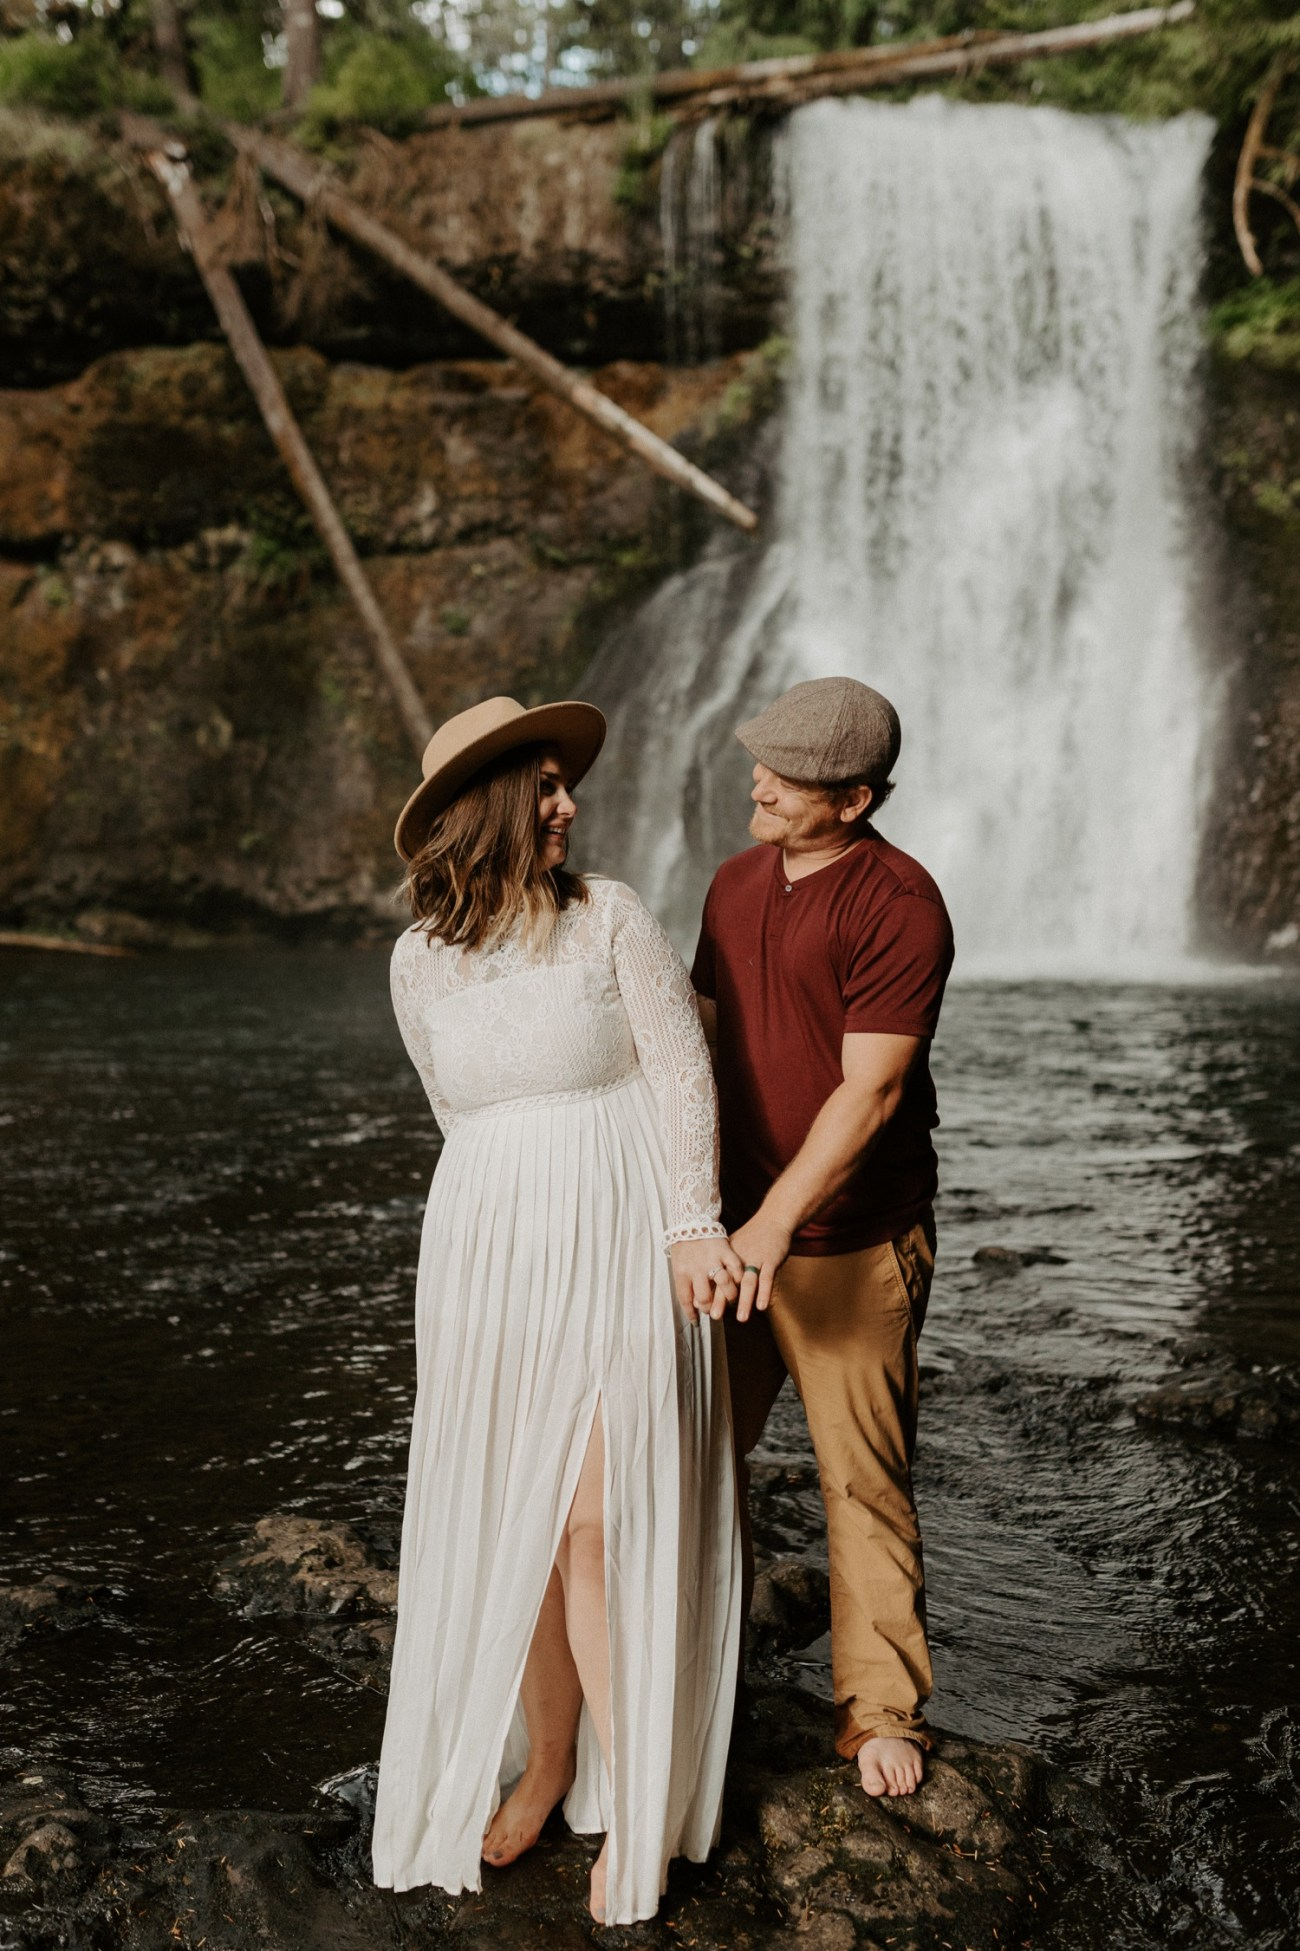 Silver Falls State Park Engagement Session North Falls Engagement Photos Portland Wedding Photographer Oregon Elopement Photographer Anais Possamai Photography 020